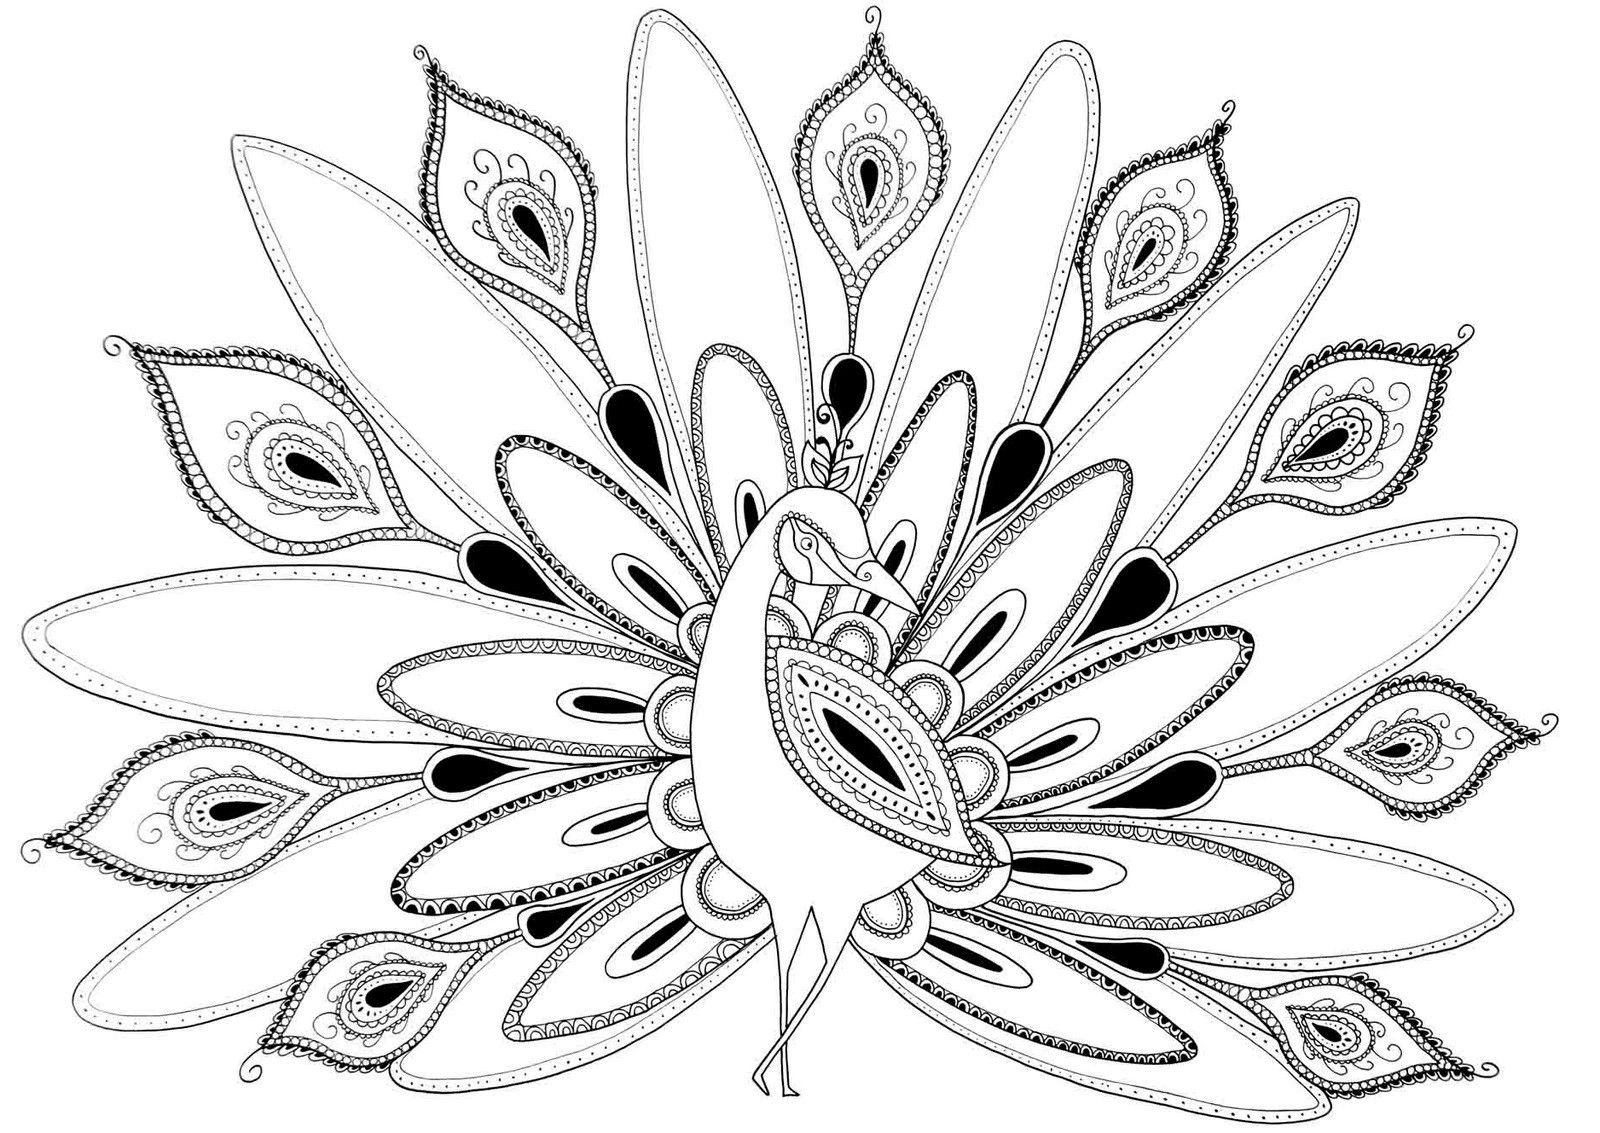 cool medium difficulty coloring pages - photo#32